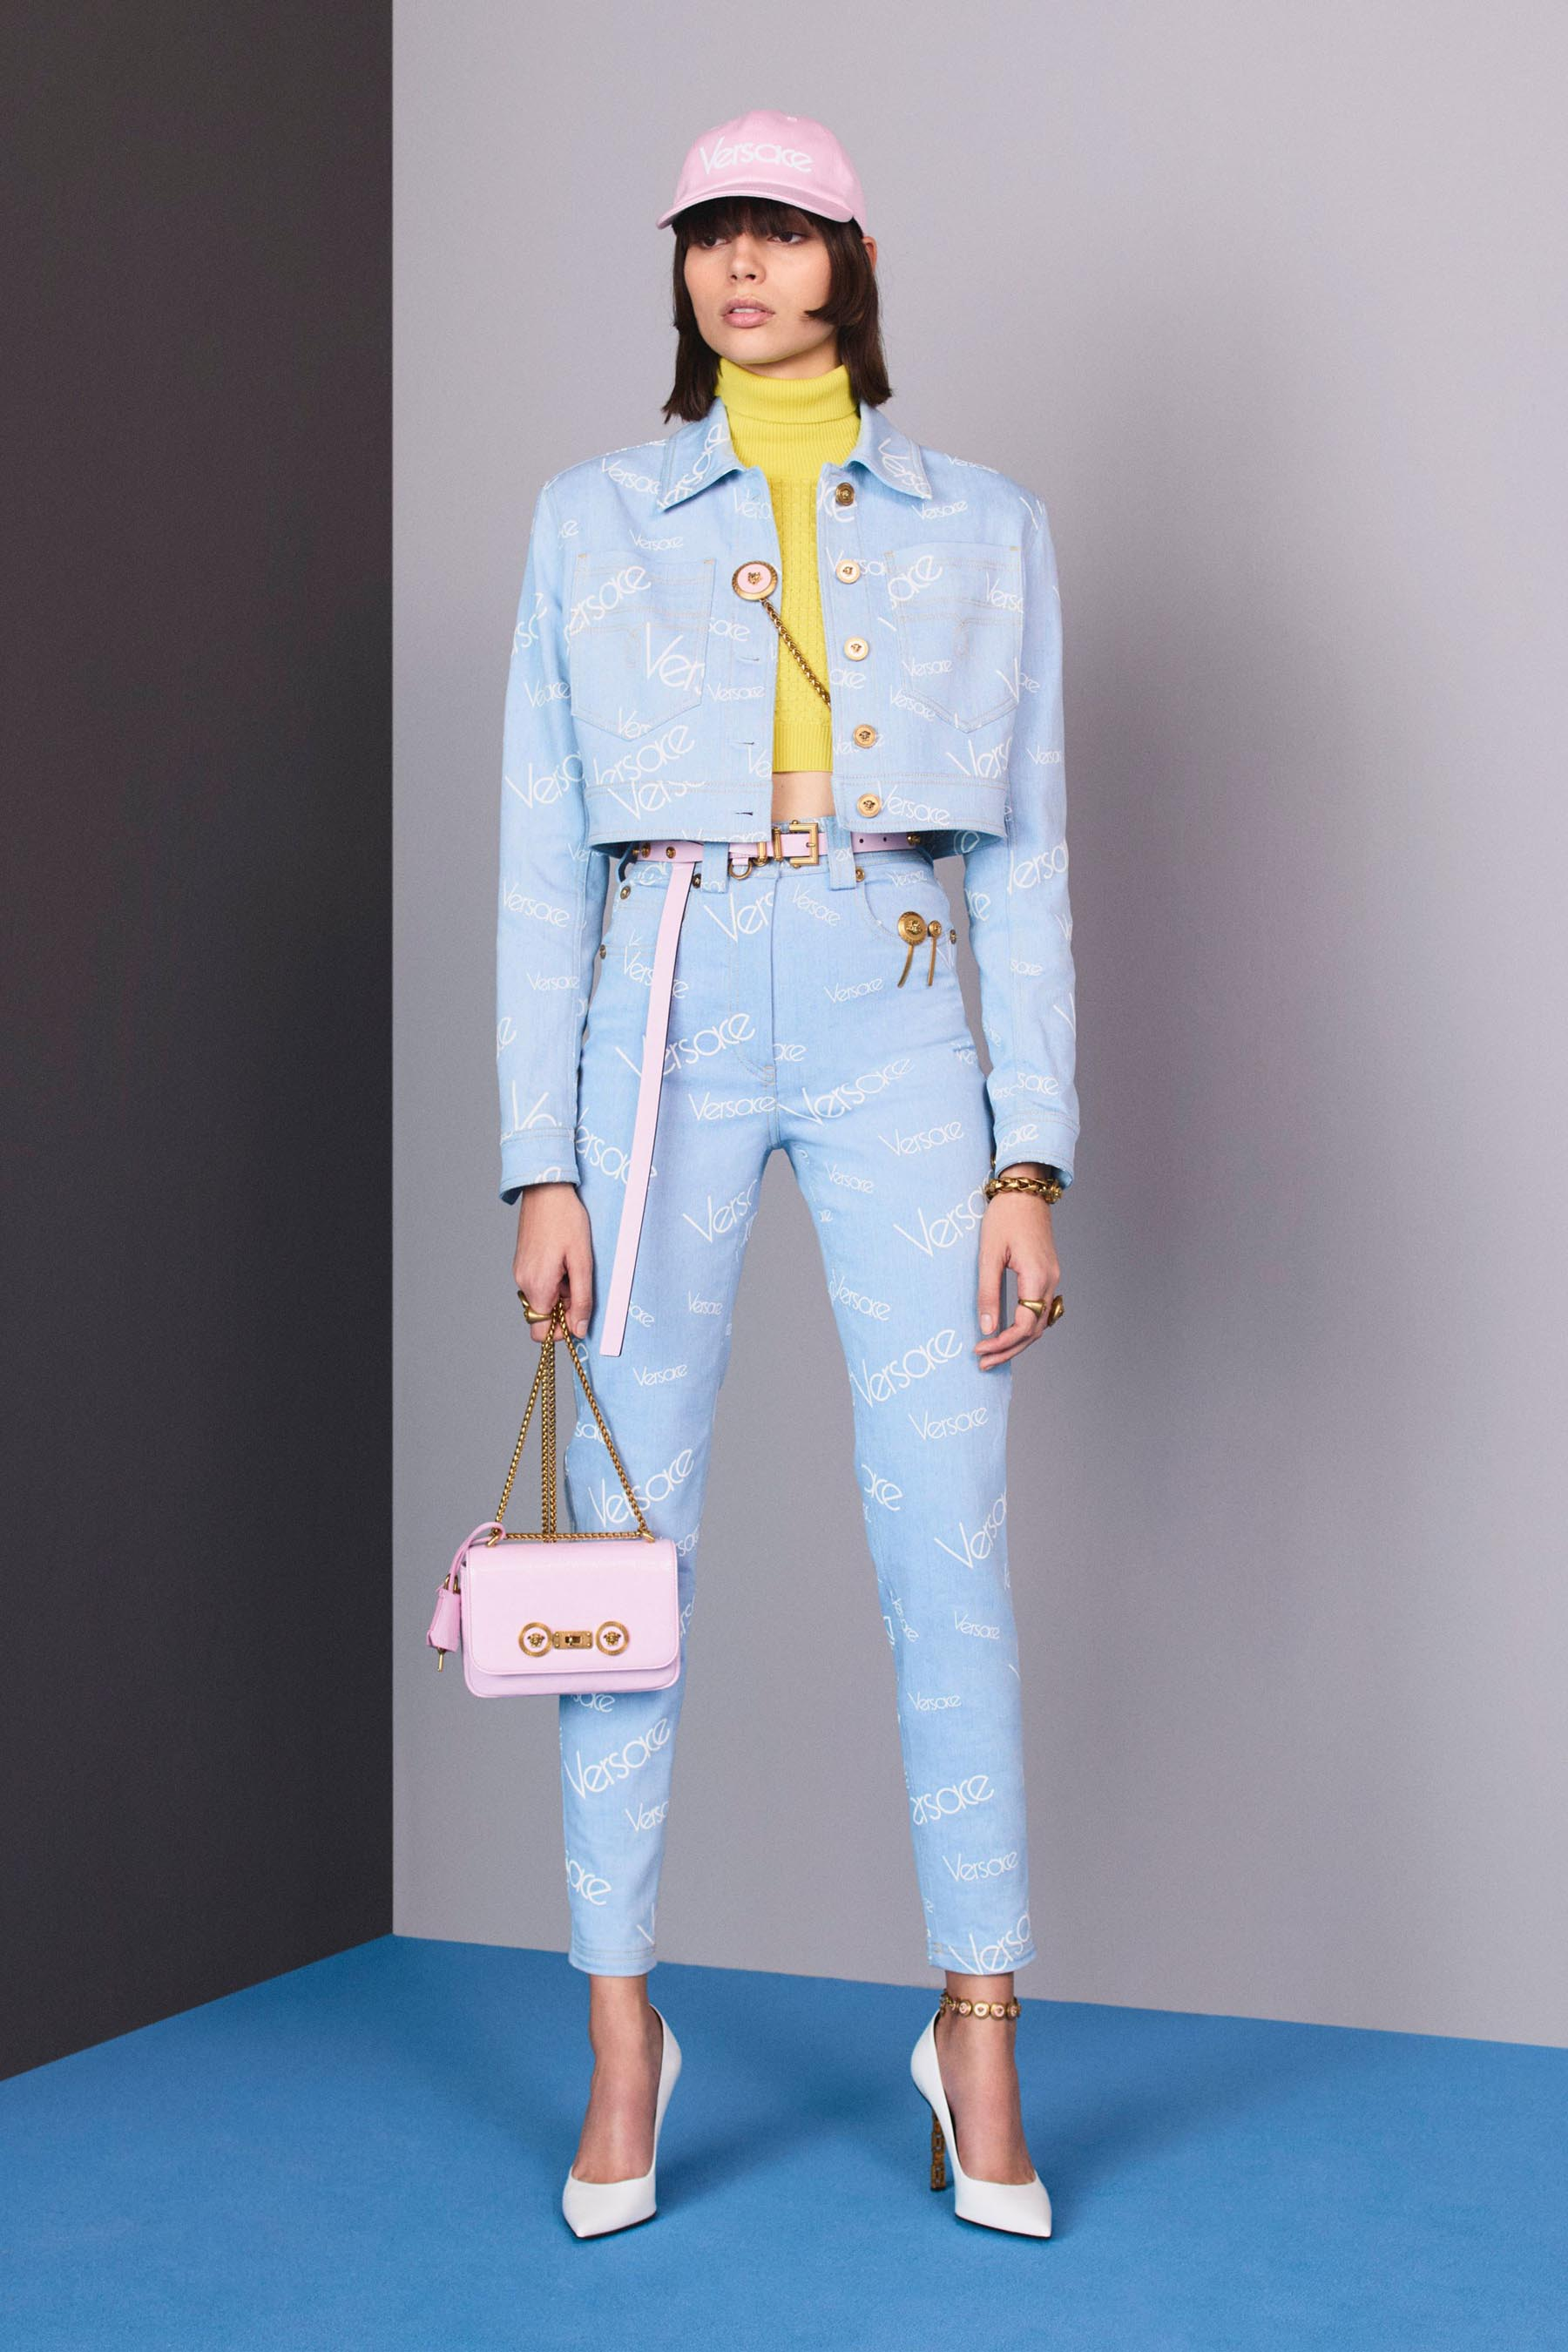 Forum on this topic: Marni Pre-Fall 2019 Collection, marni-pre-fall-2019-collection/